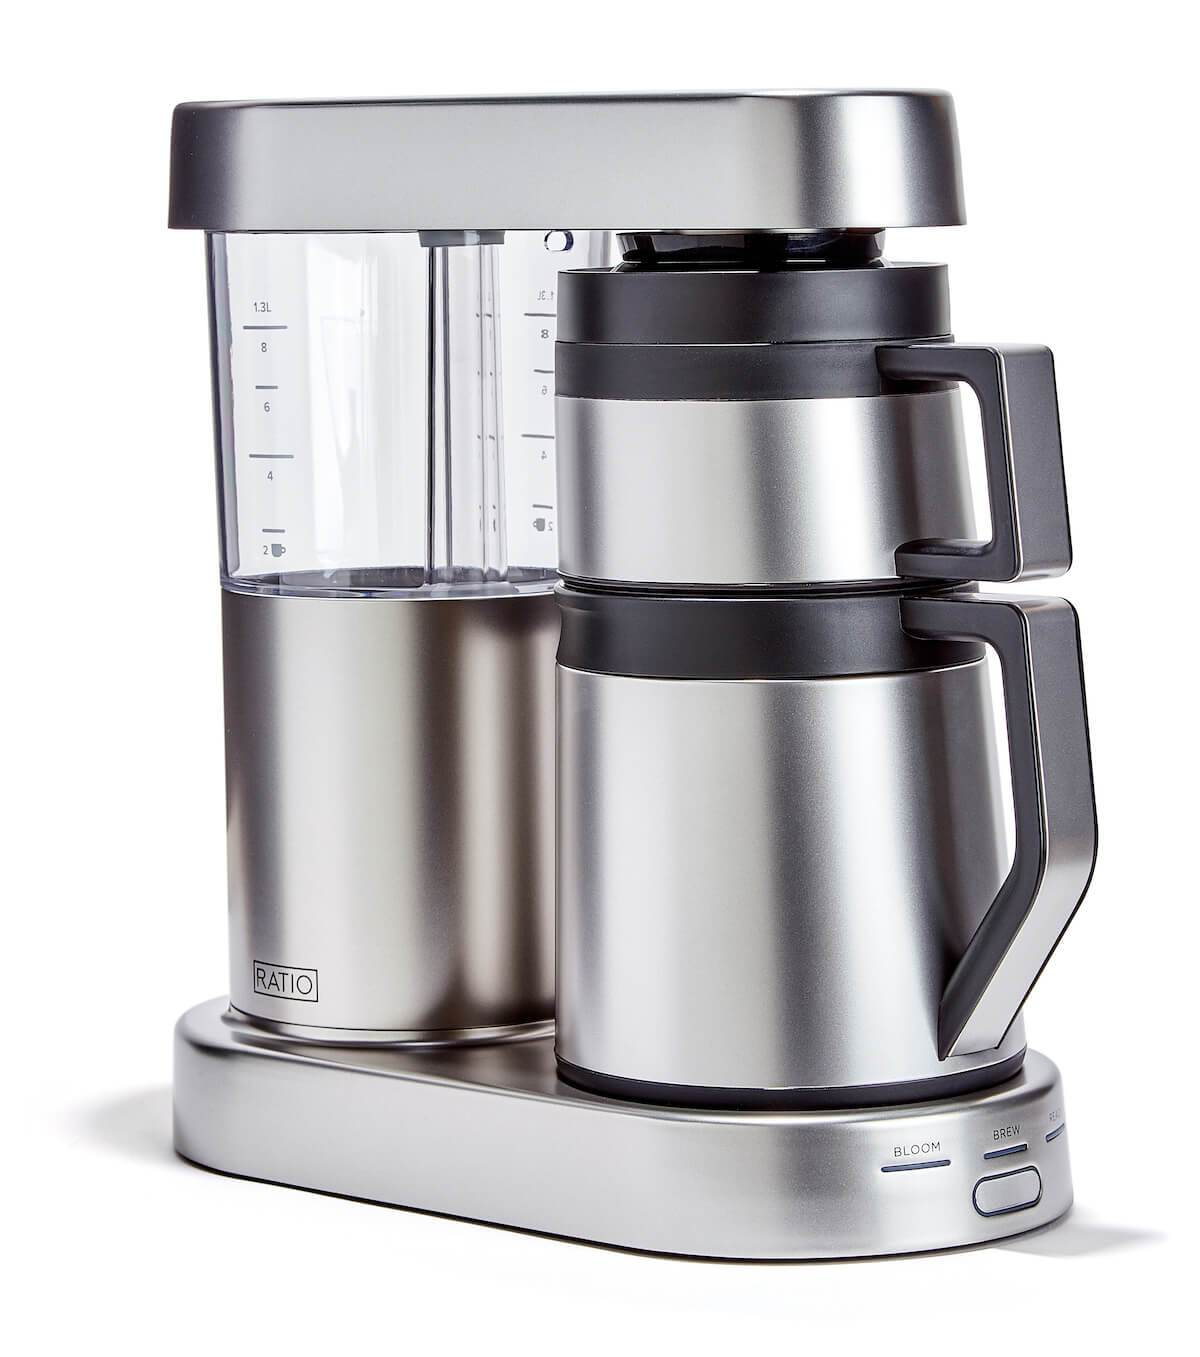 Ratio Six Coffee Maker in Matte Stainless